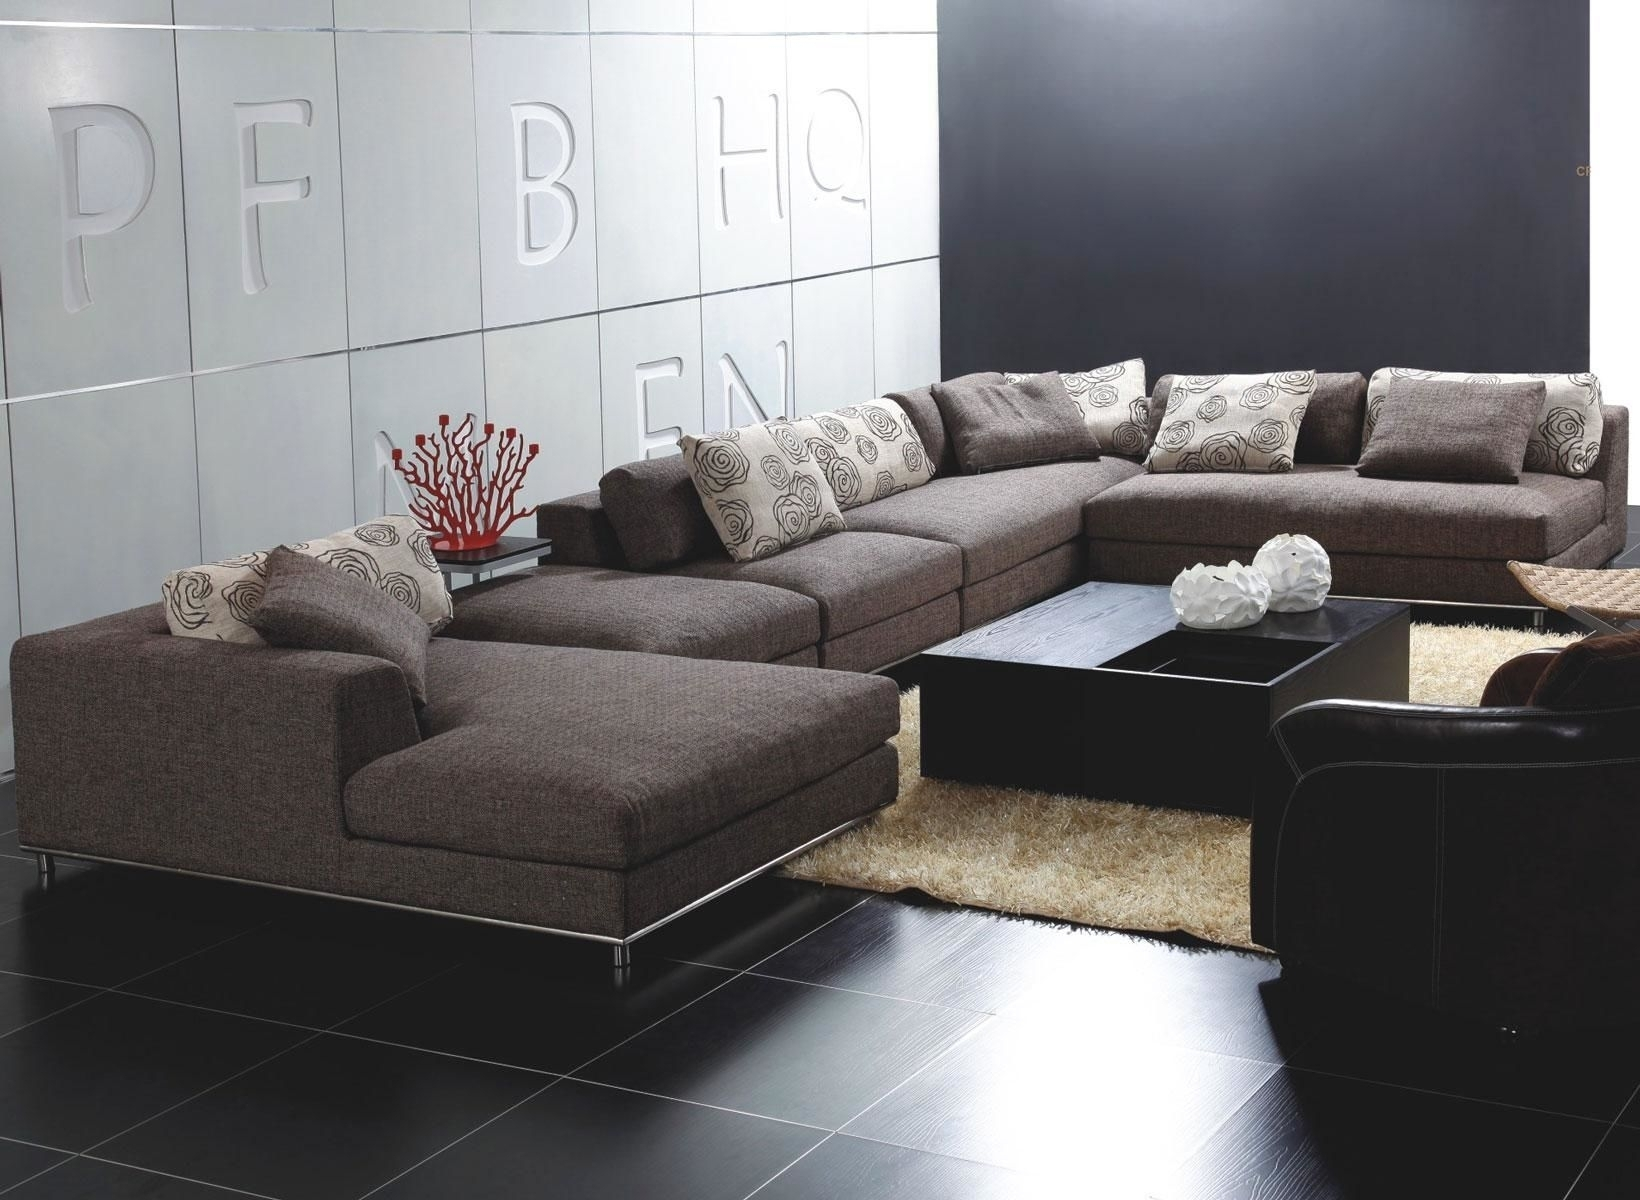 Brilliant Sectional Sofas Austin Tx – Buildsimplehome In Sectional Sofas At Austin (View 7 of 10)